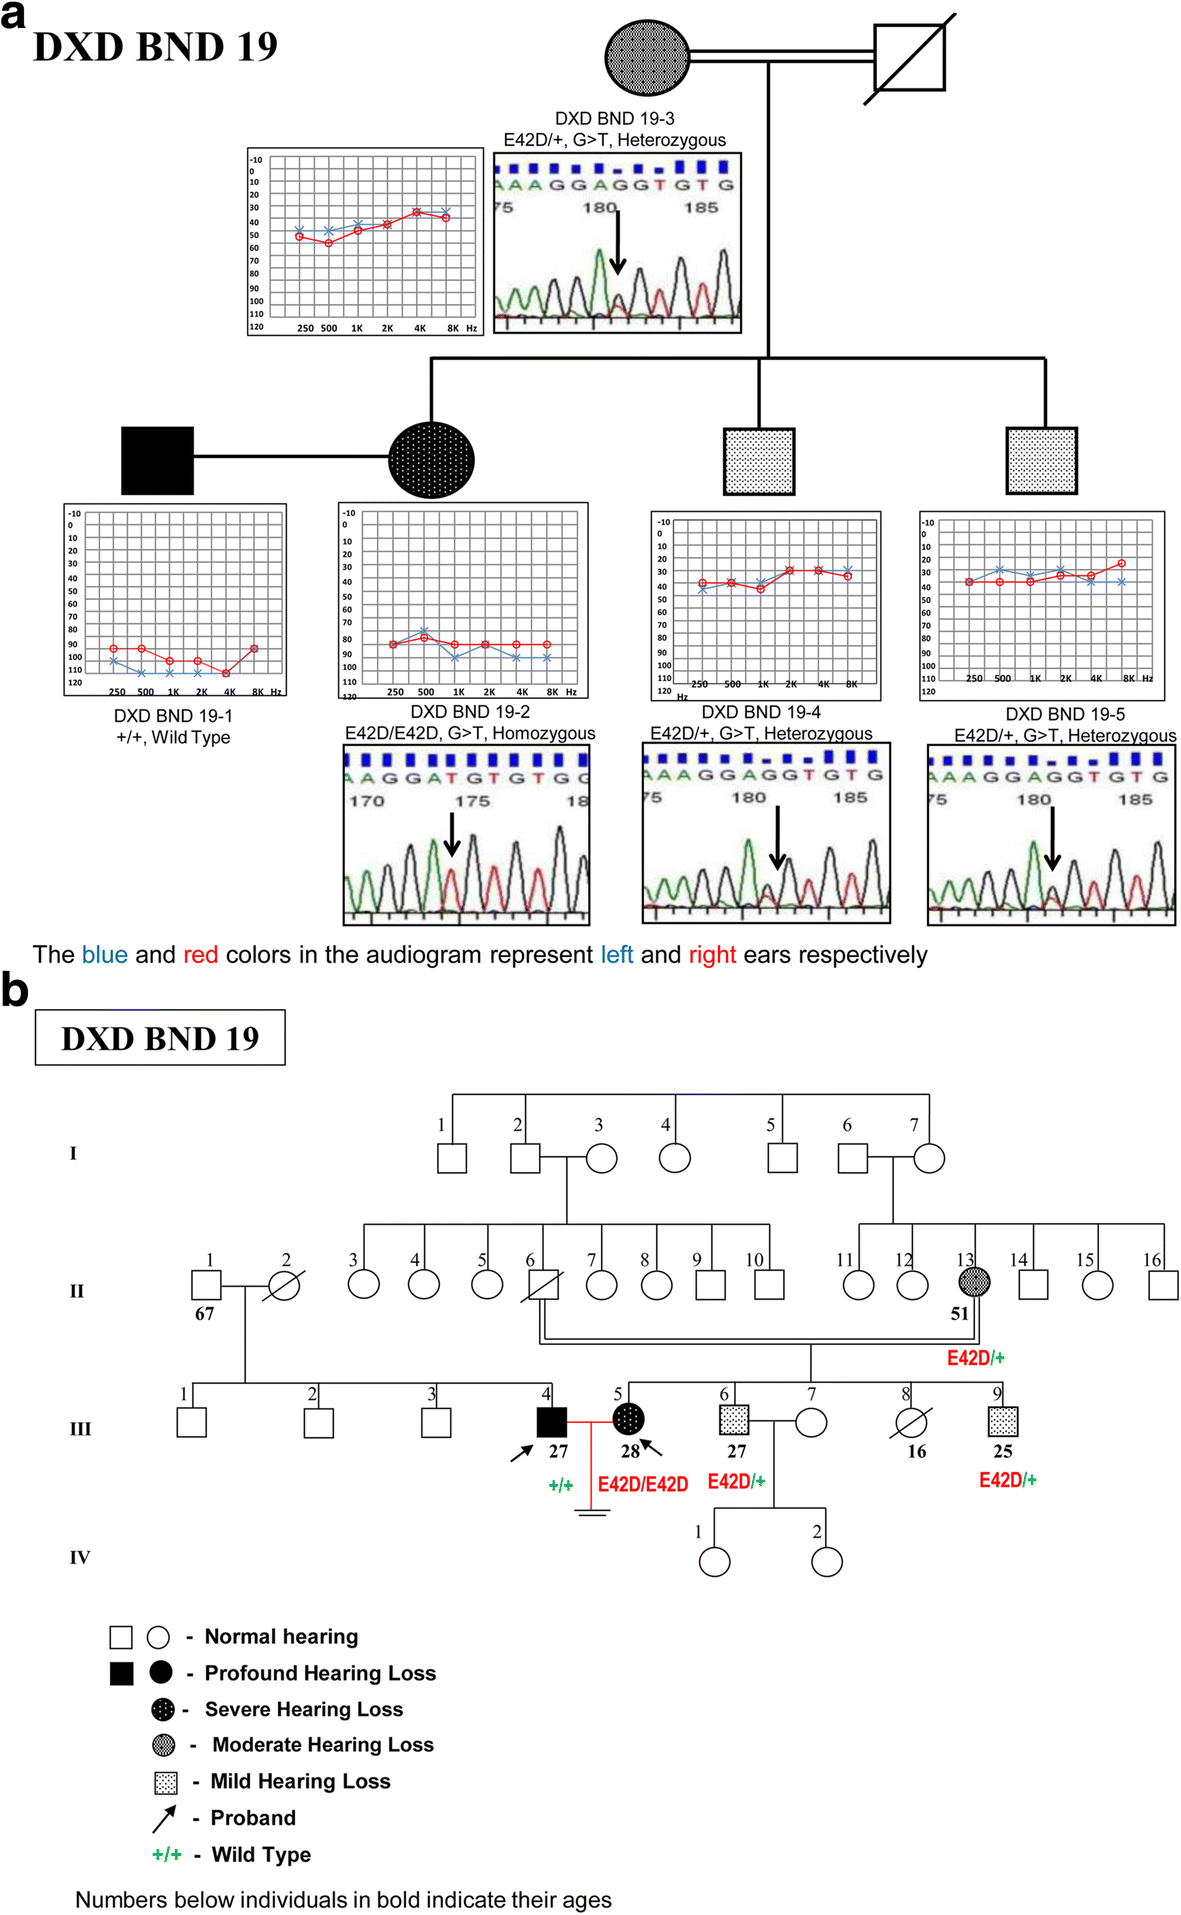 Role of DFNB1 mutations in hereditary hearing loss among